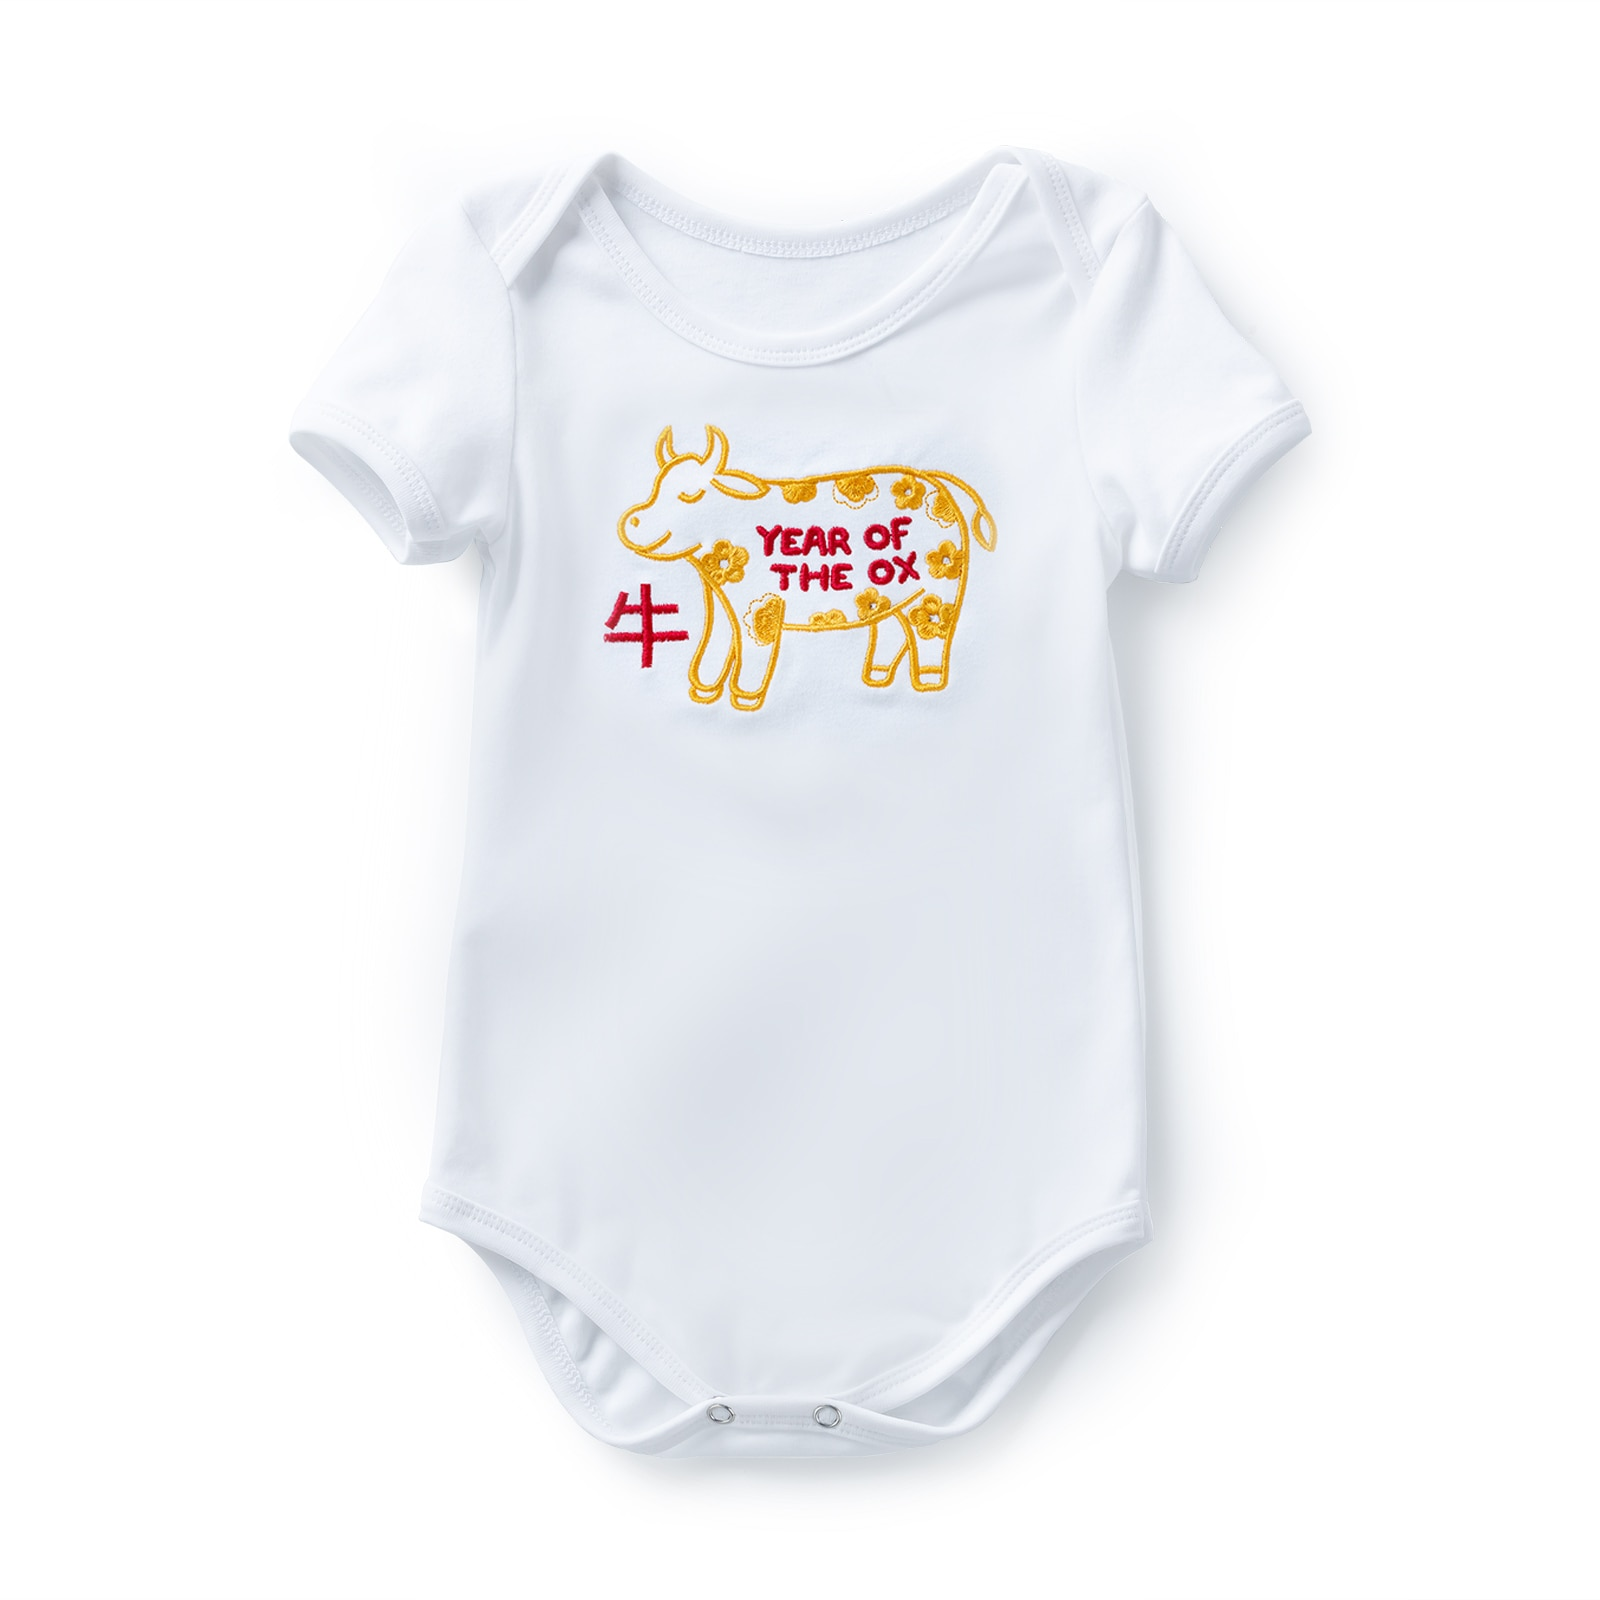 0-2 Year Newborn Baby Girls or Boys Fashion Clothes Romper Cotton Children New Year of the ox design Costume with Embroidery